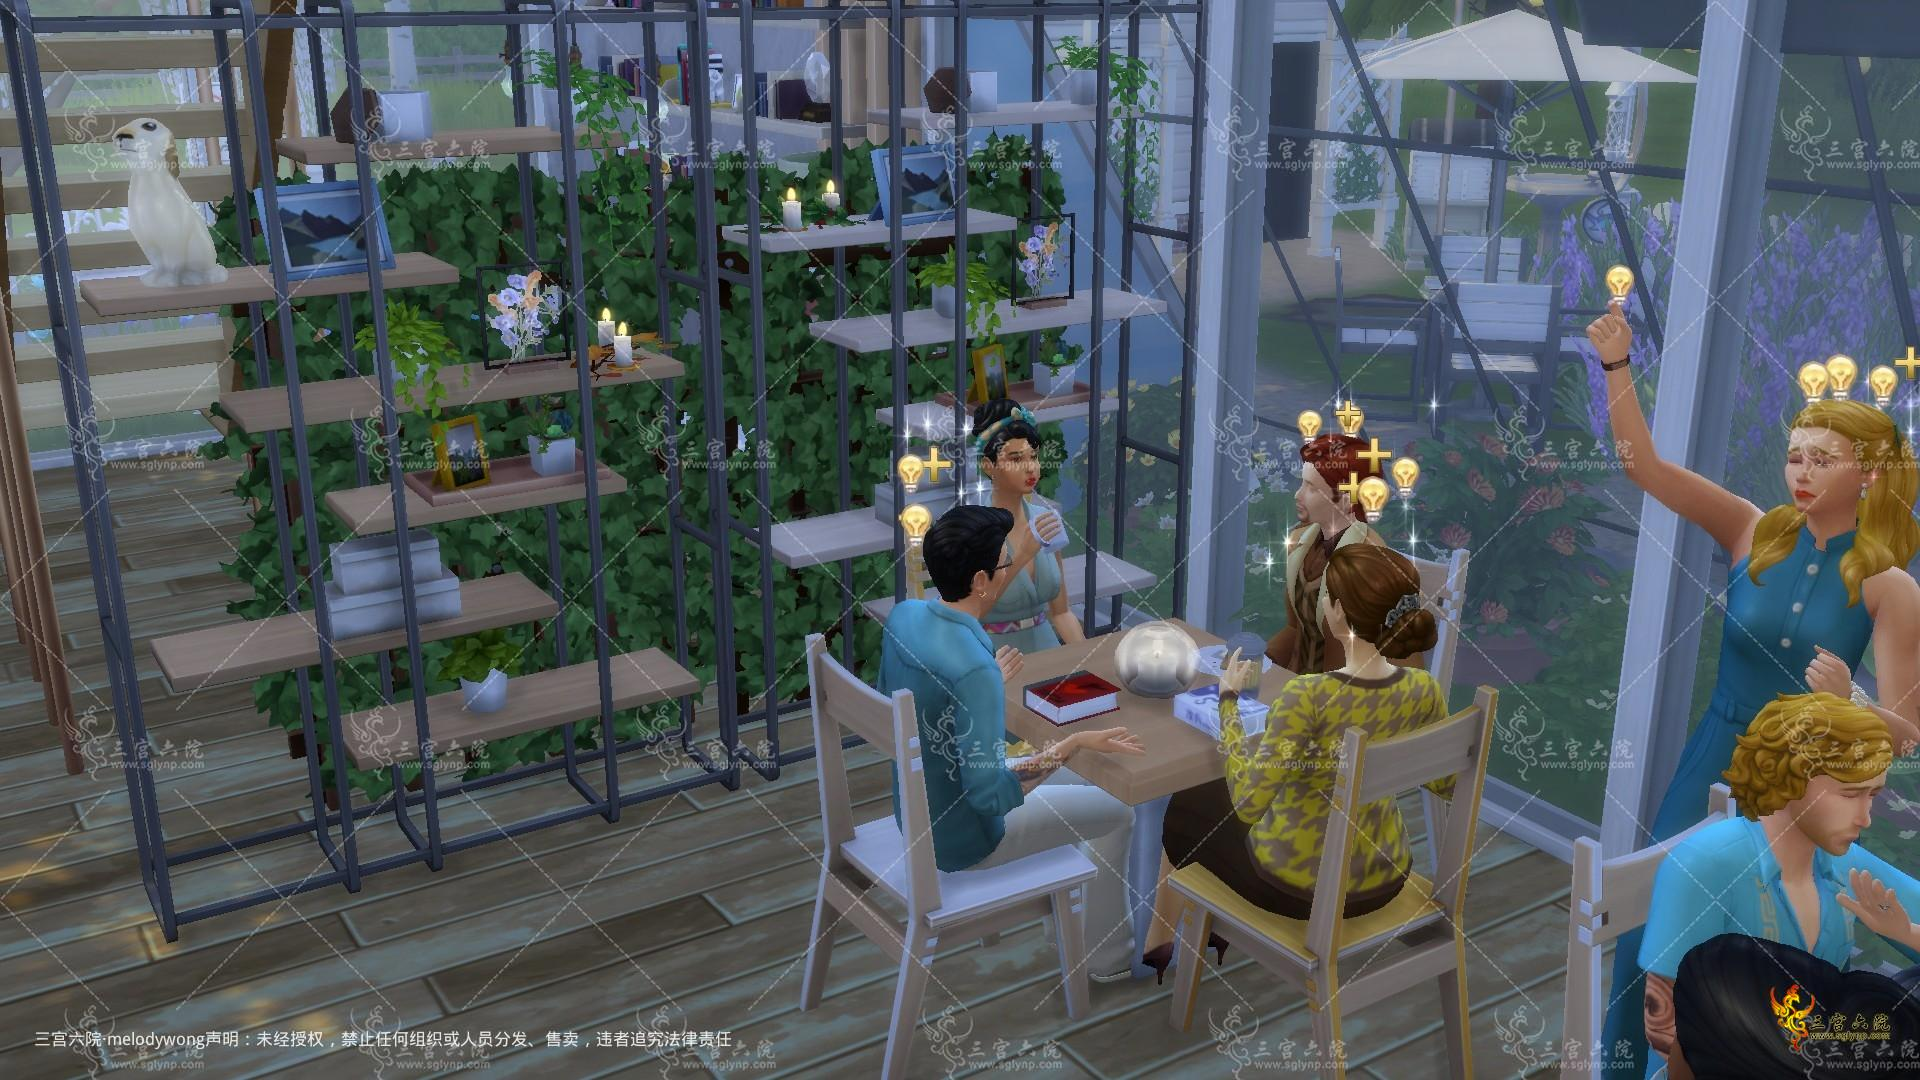 The Sims 4 2021_8_26 下午 09_59_03.png